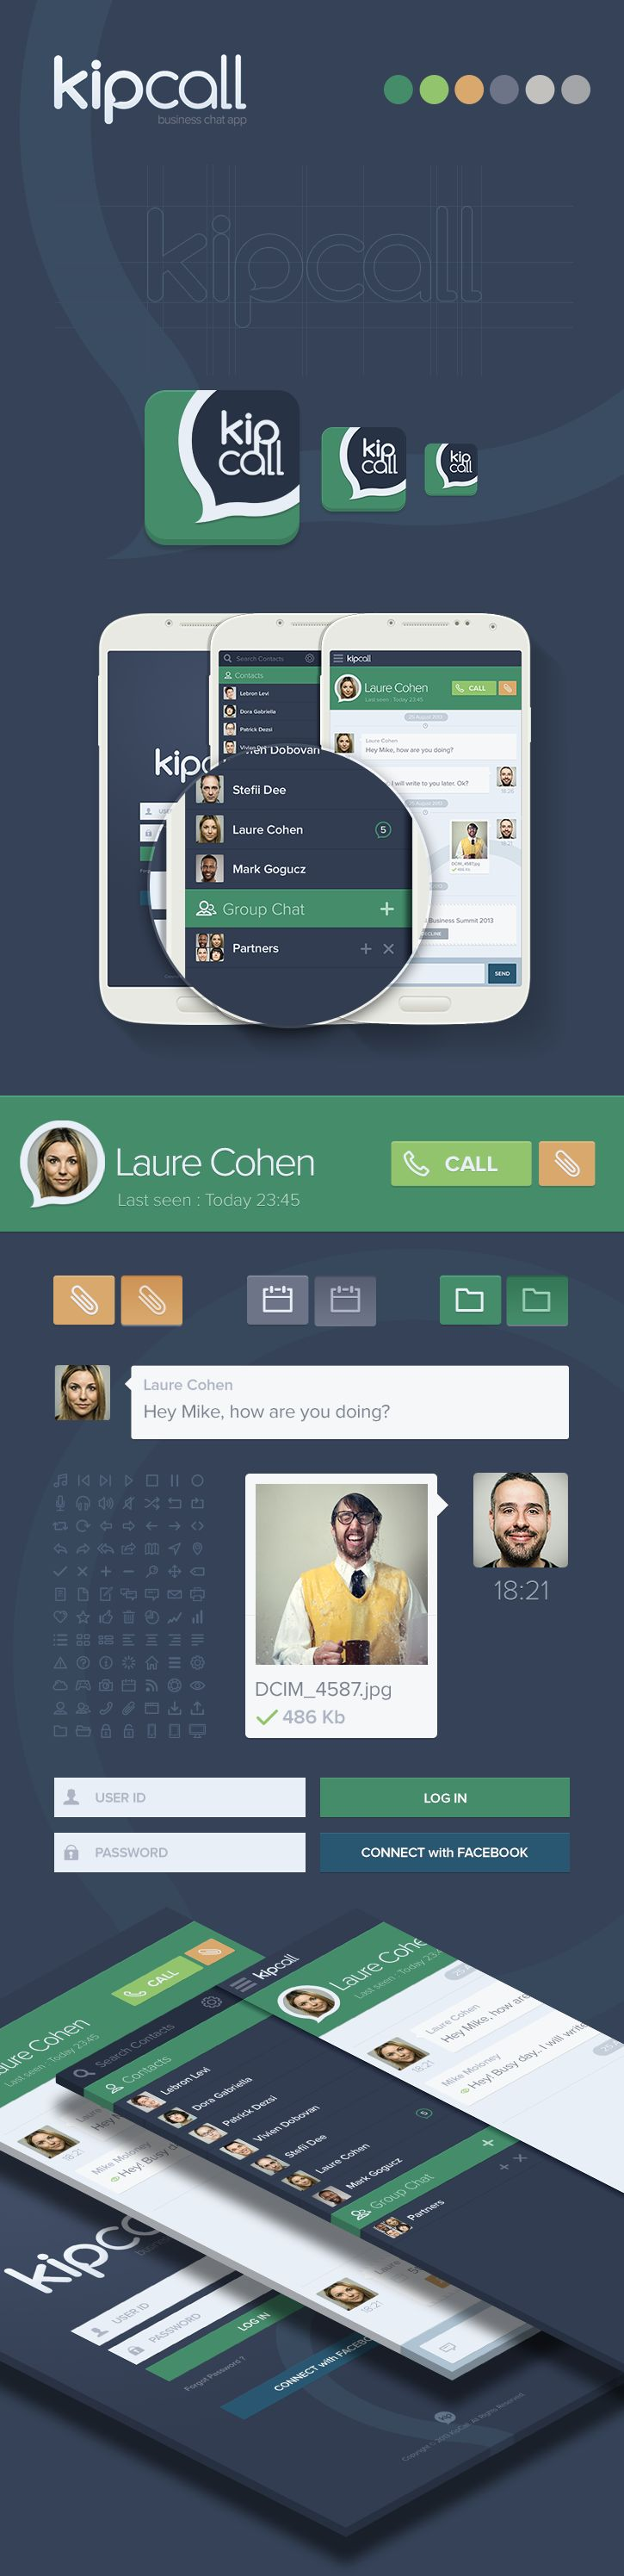 Here is a collection of gorgeous screenshots and desktop icons for this mobile chat app.